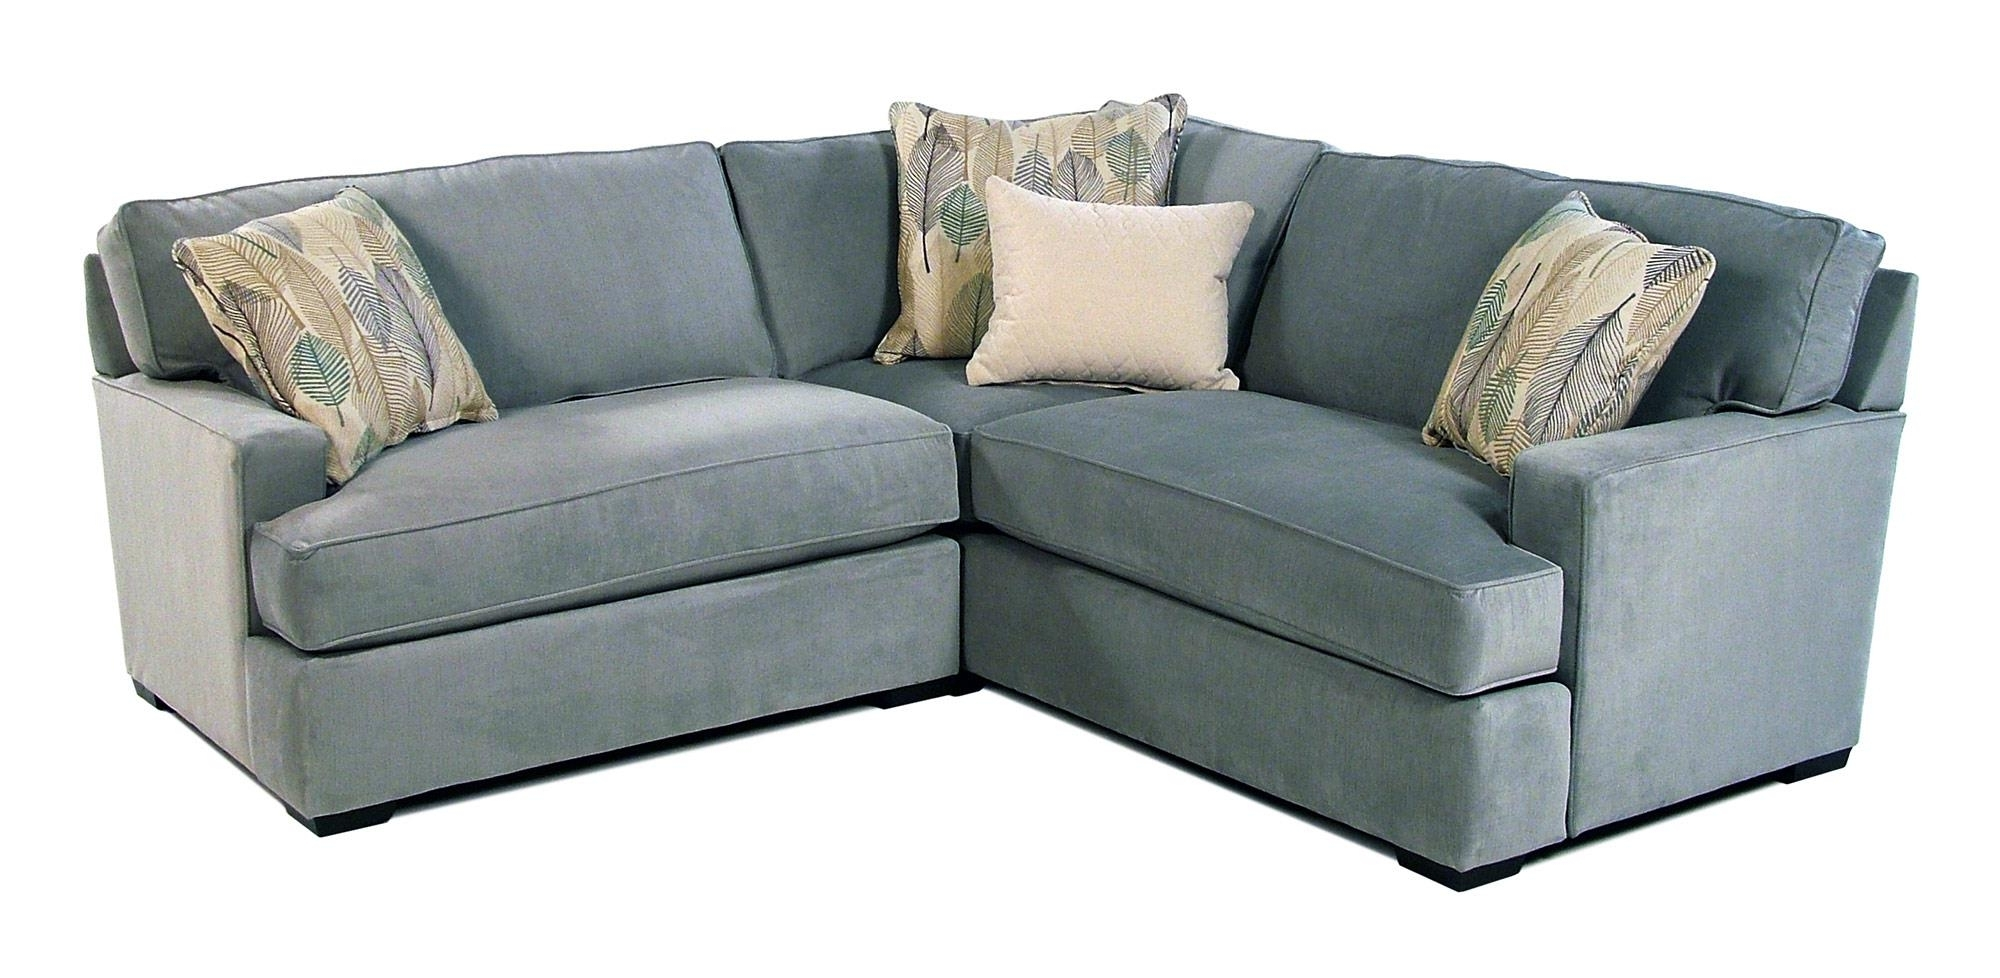 Hawaii Sectional Sofas Intended For Current Blue Hawaii Contemporary 2 Piece Sectional (View 10 of 20)